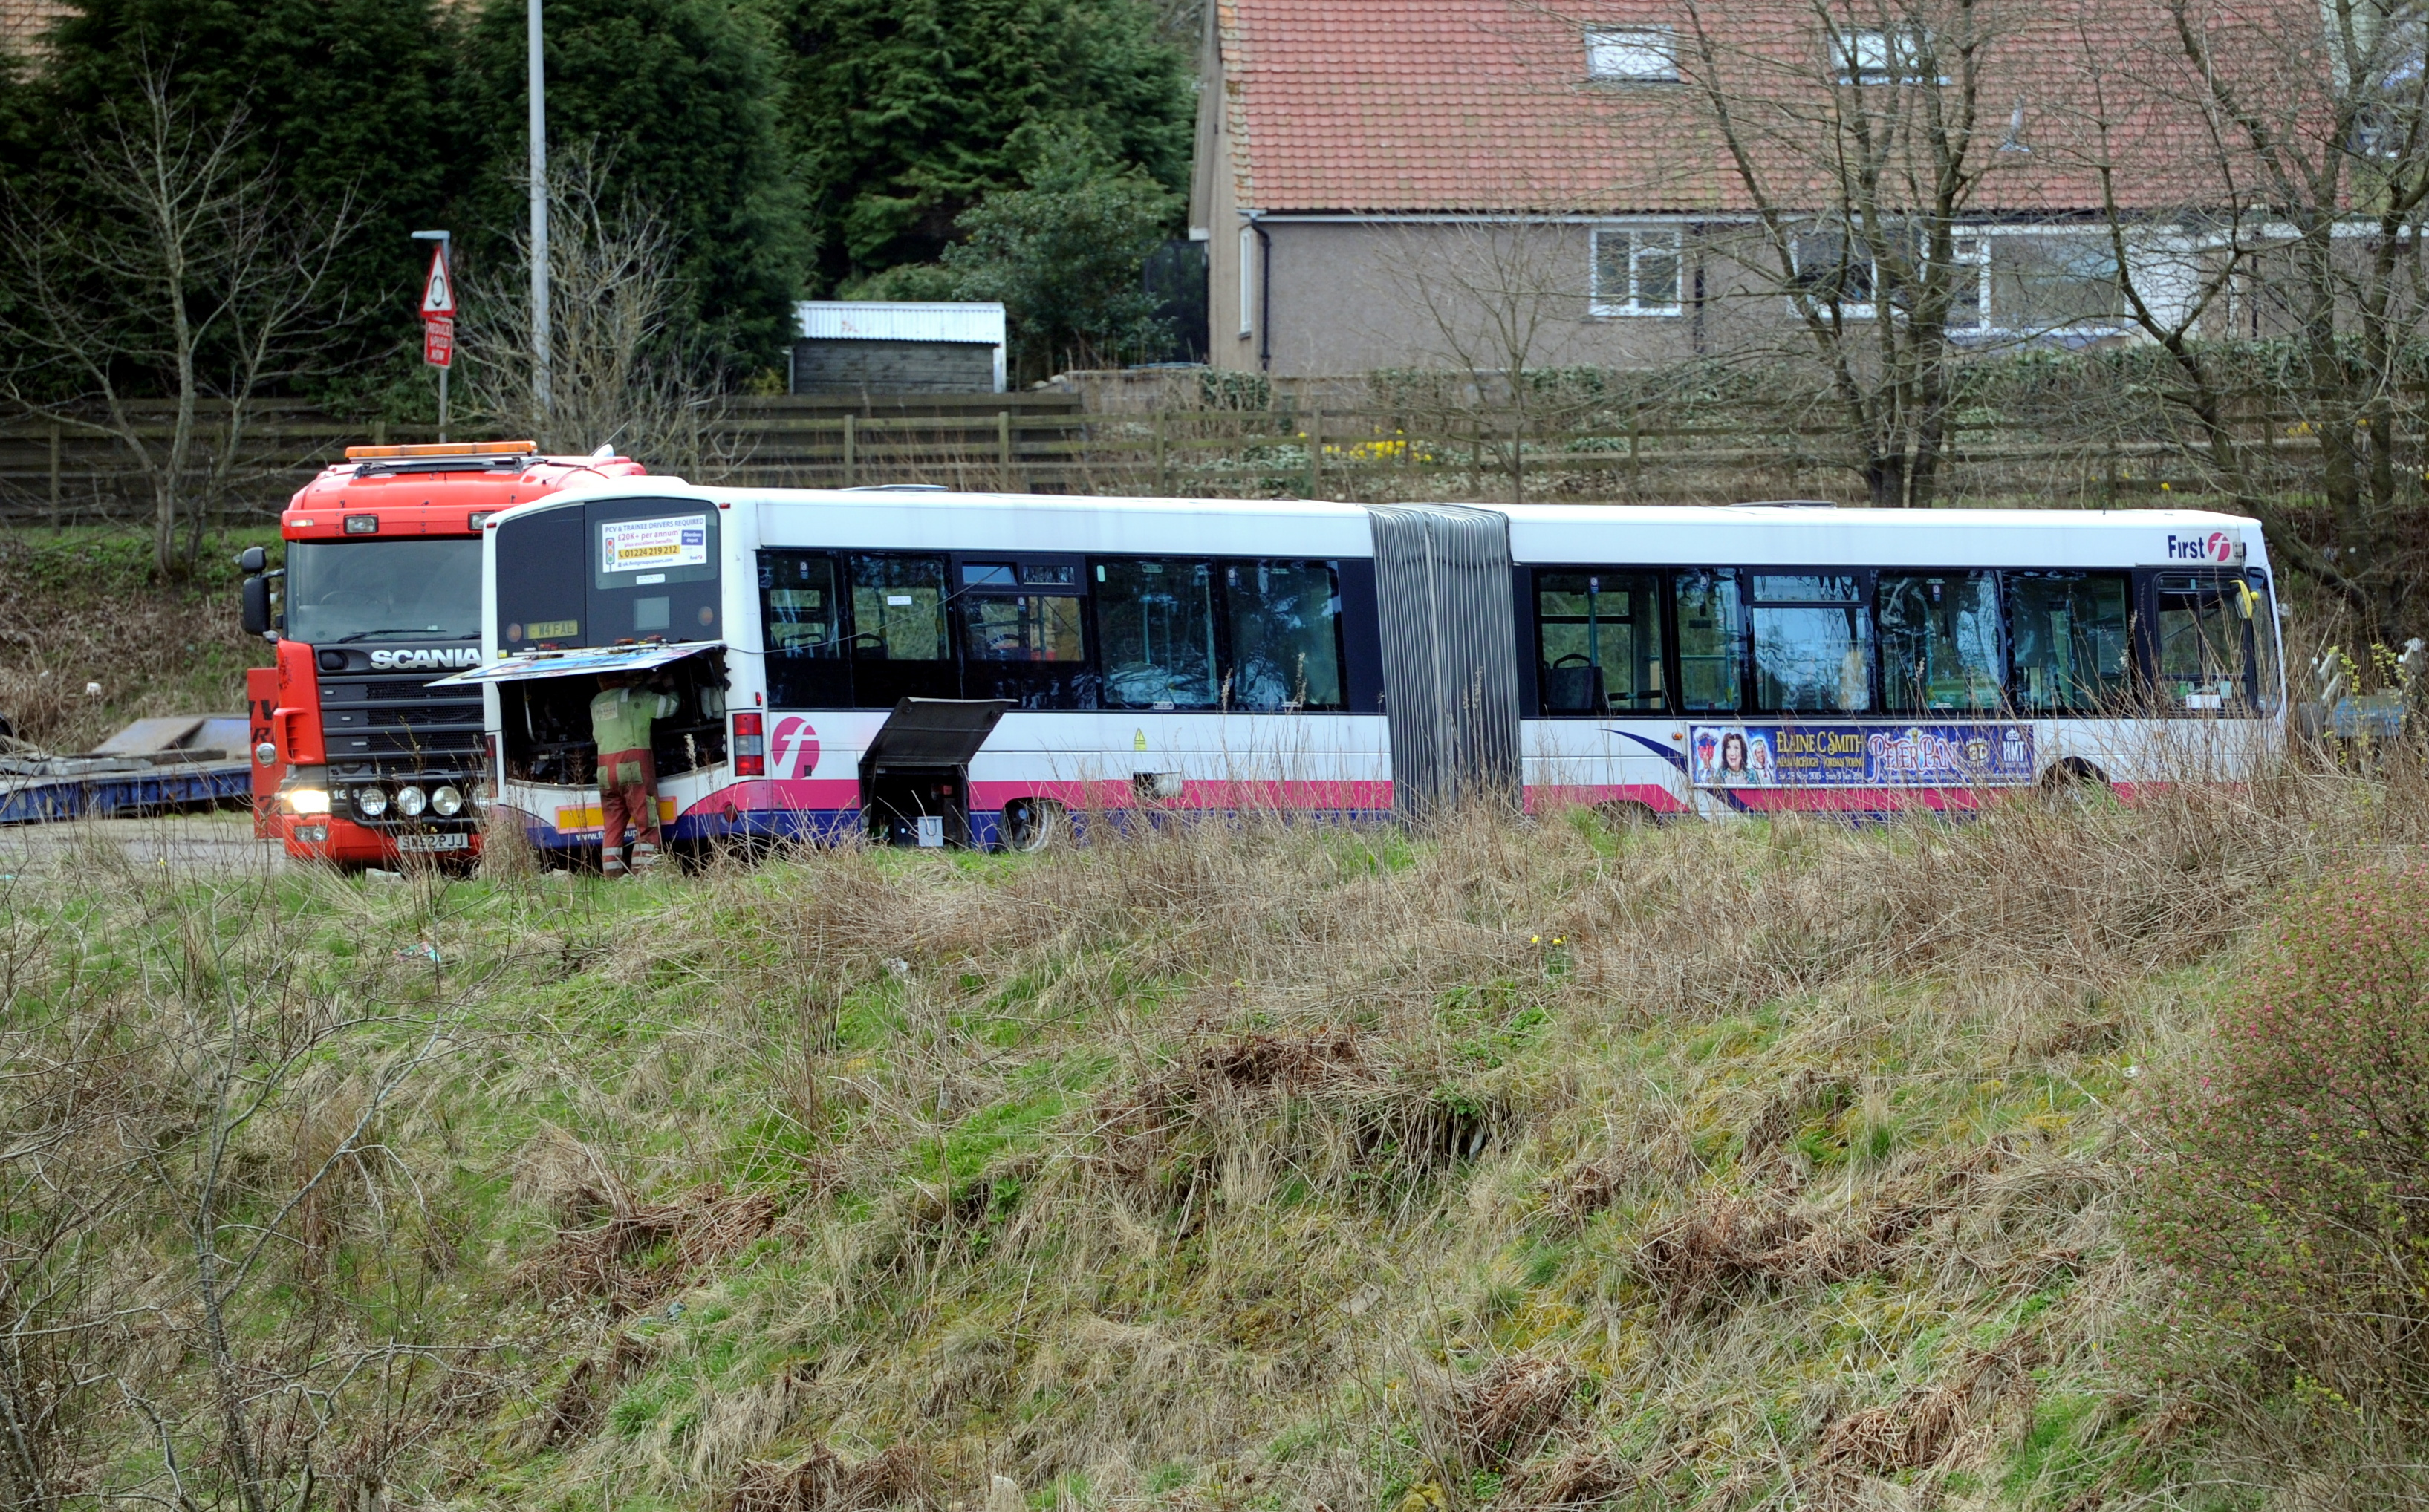 The last remaining bus at the site near Kingswells.